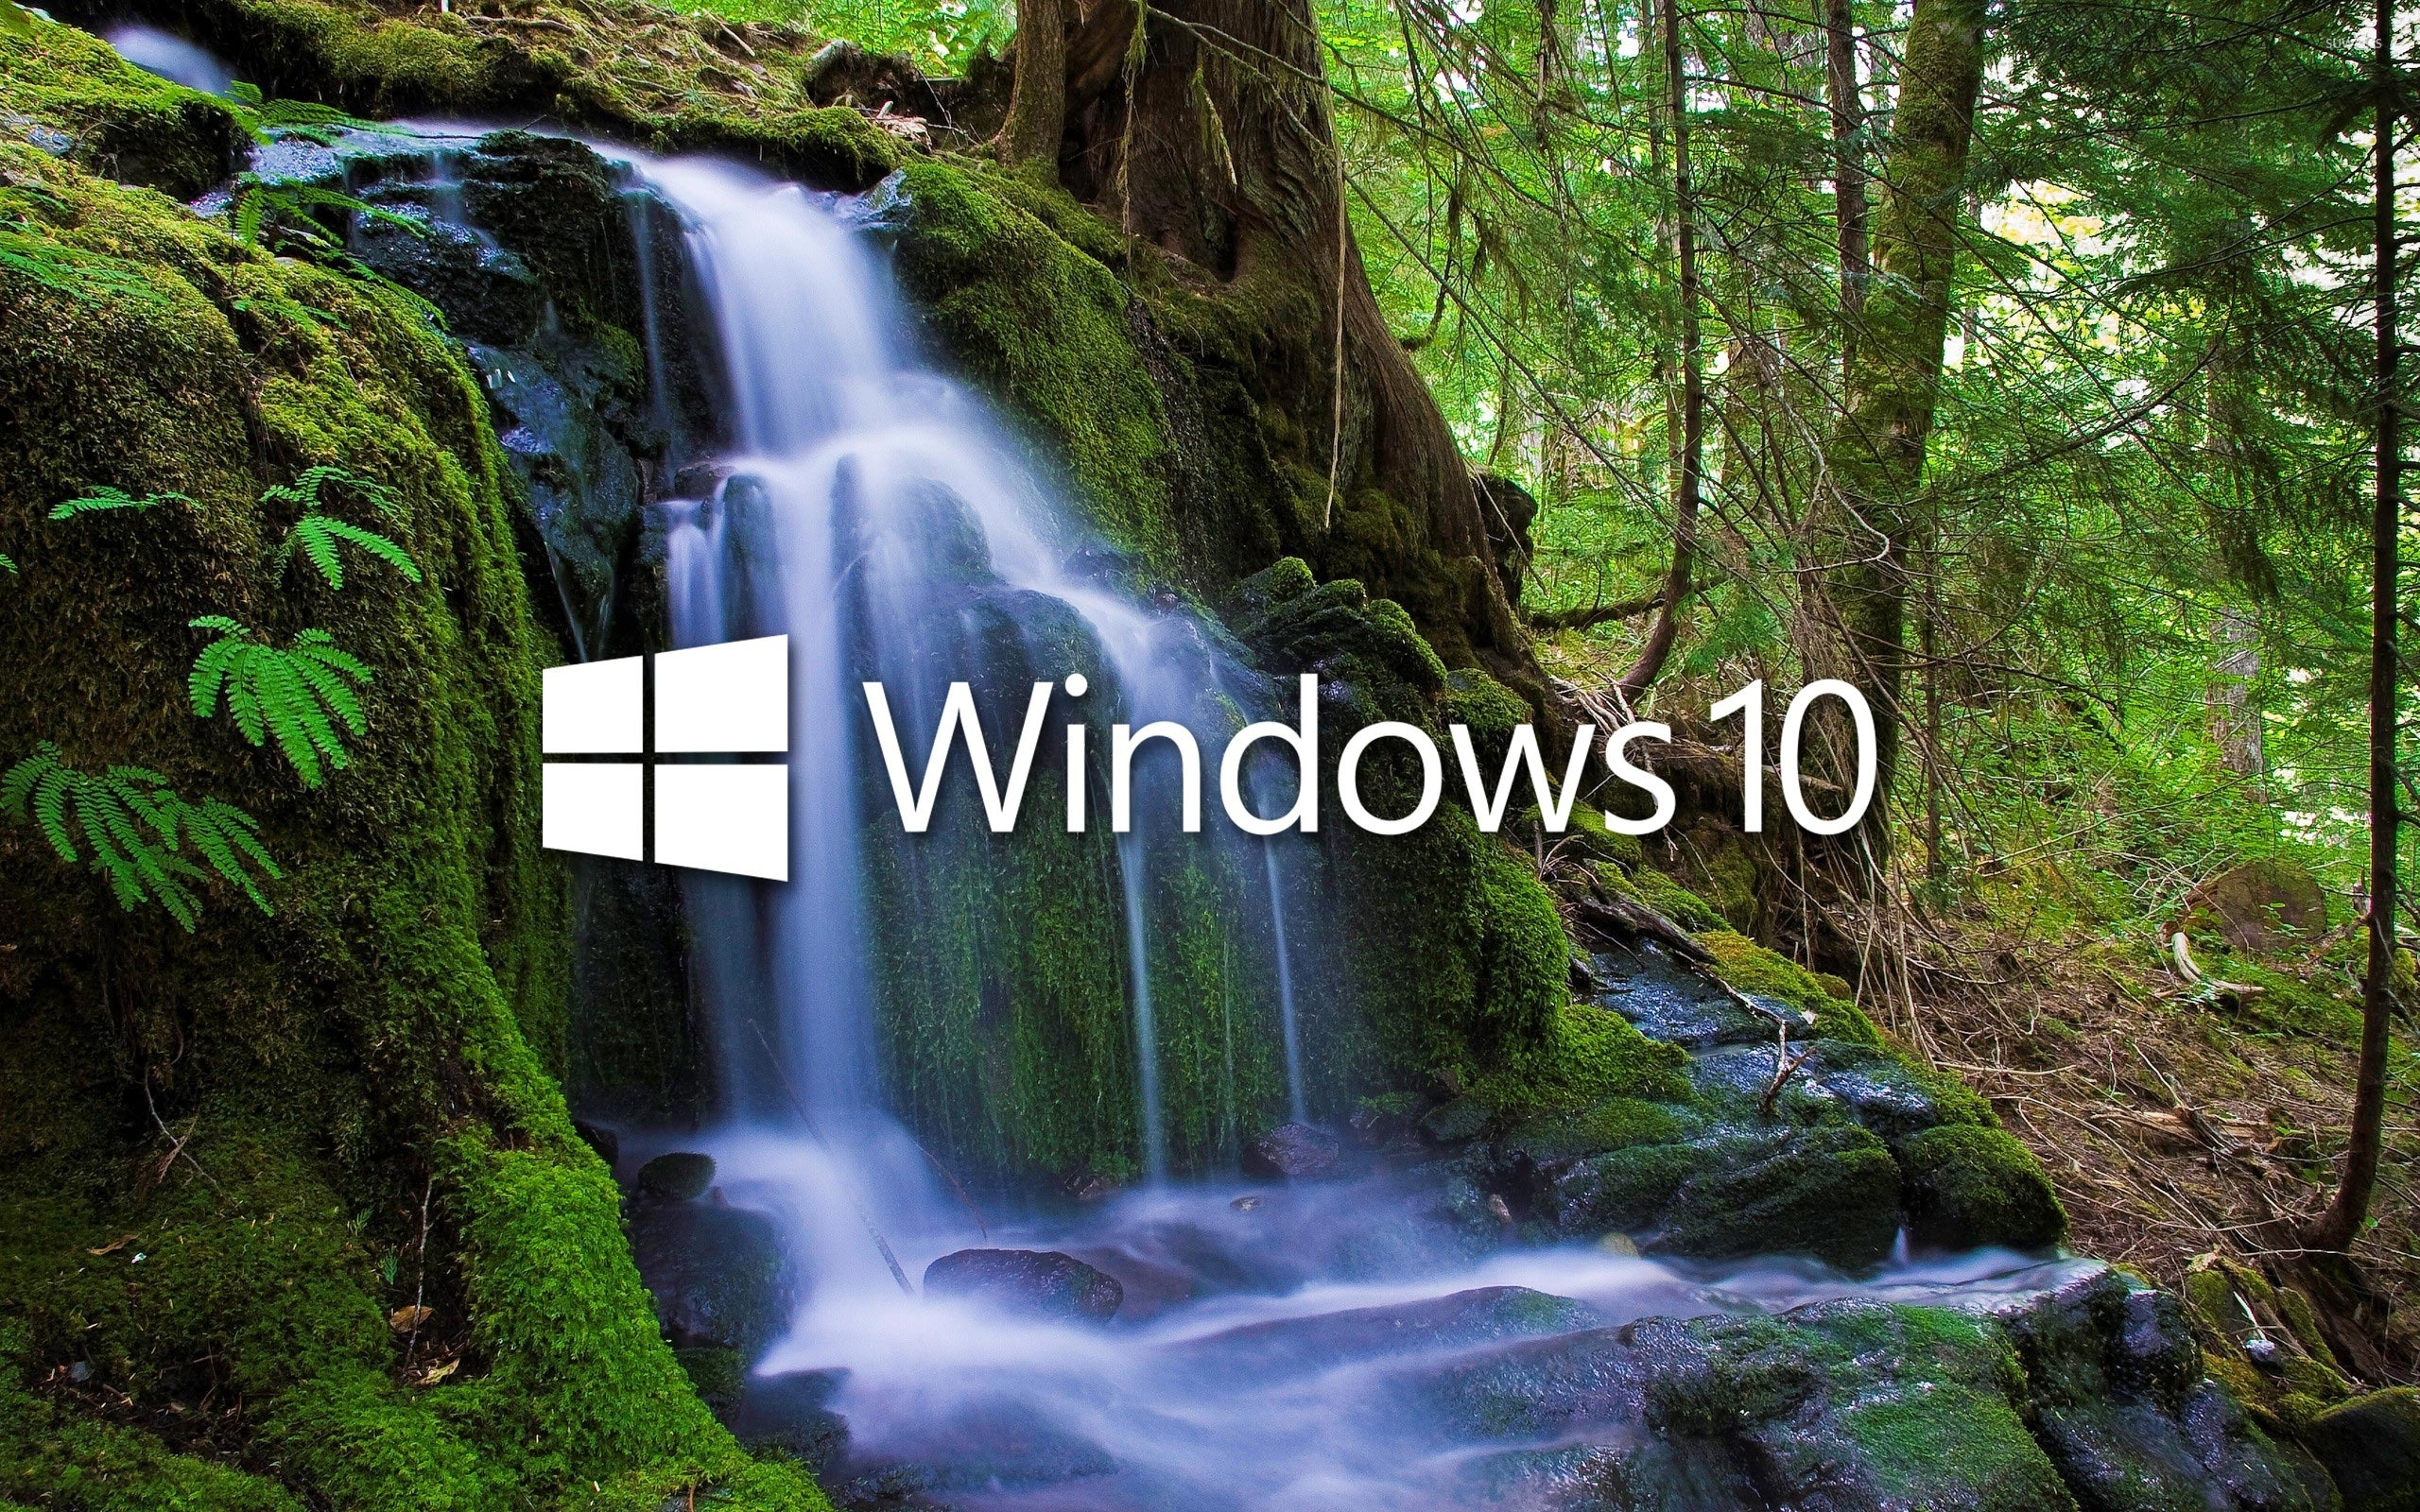 Fall Wallpaper For Windows 10 Windows 10 Over The Waterfall White Text Logo Wallpaper